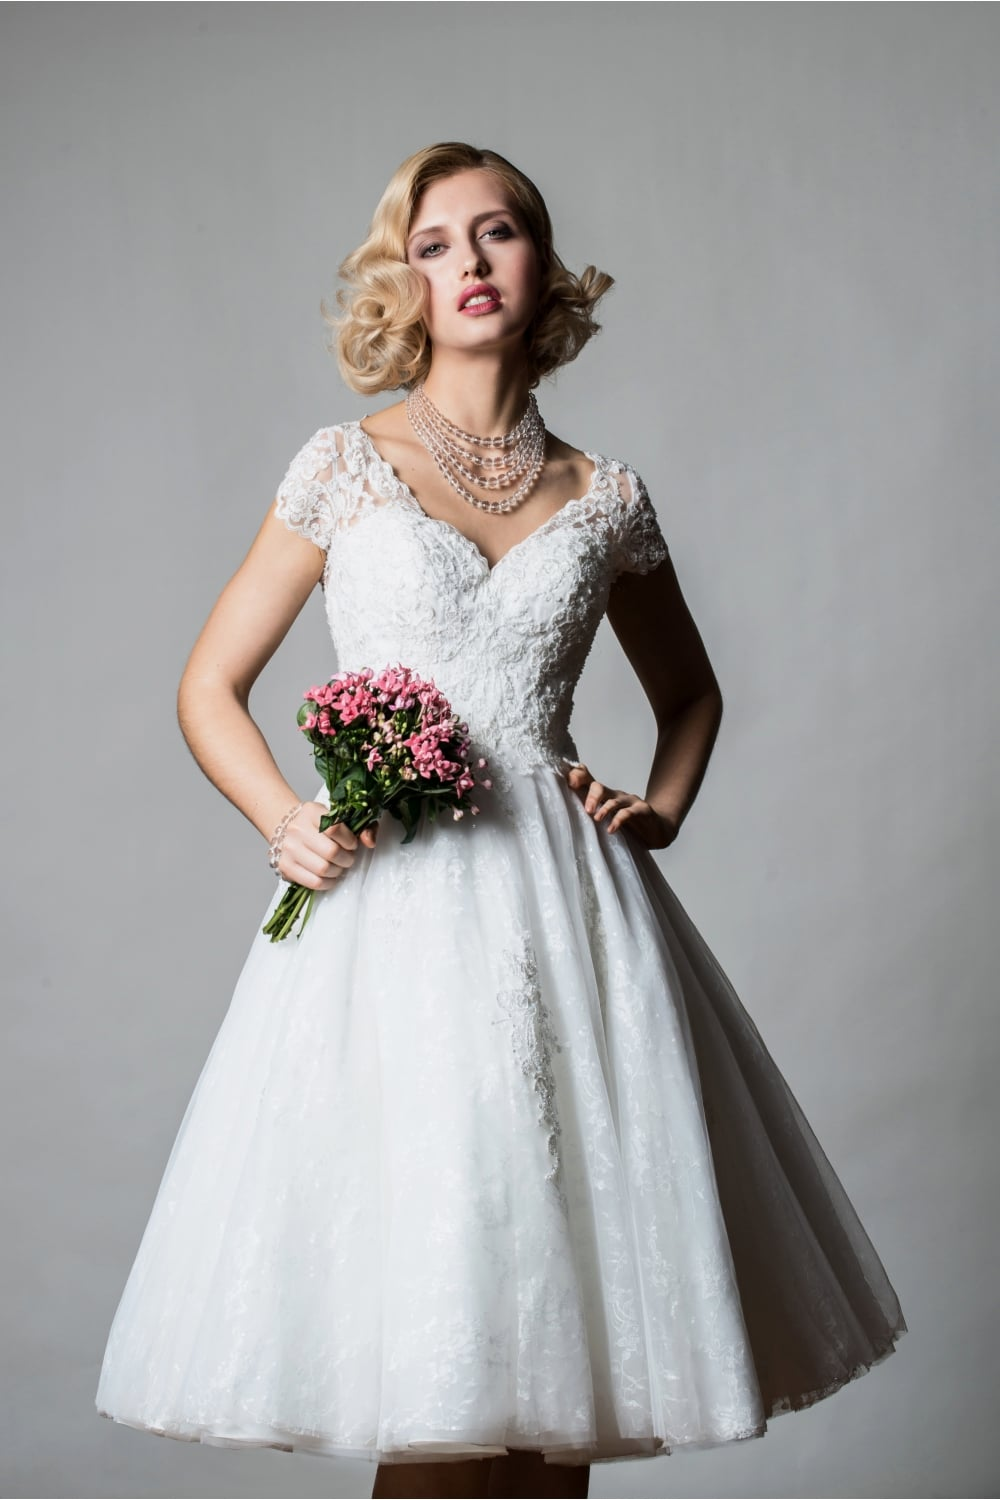 Tiana Tea Length Short Wedding Dress With Cap Sleeve In Lace Sparkly Tulle